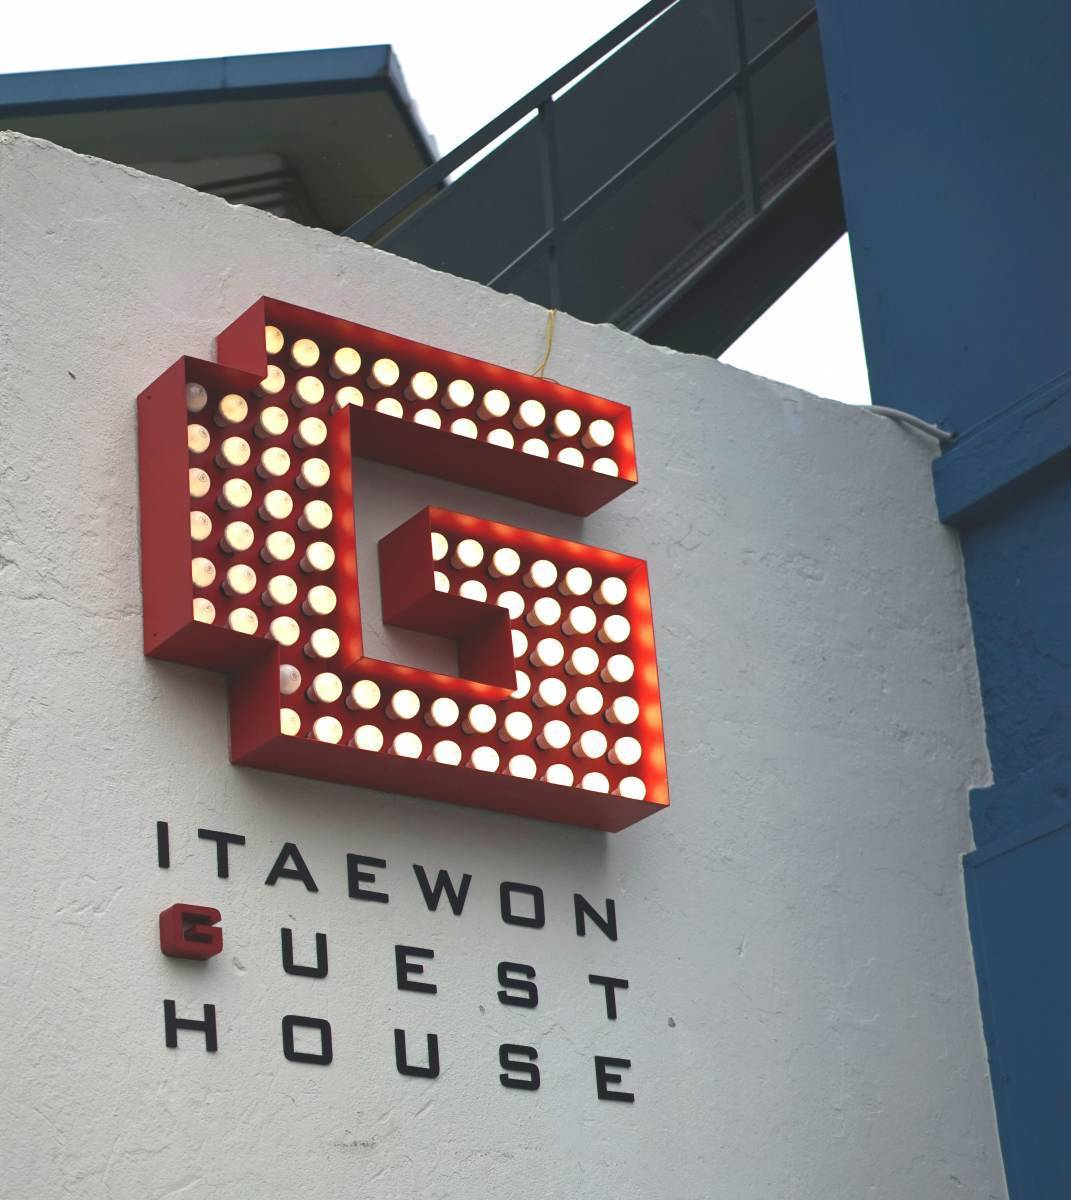 G Itaewon Guest House, Seoul, South Korea, discounts on hotels in Seoul